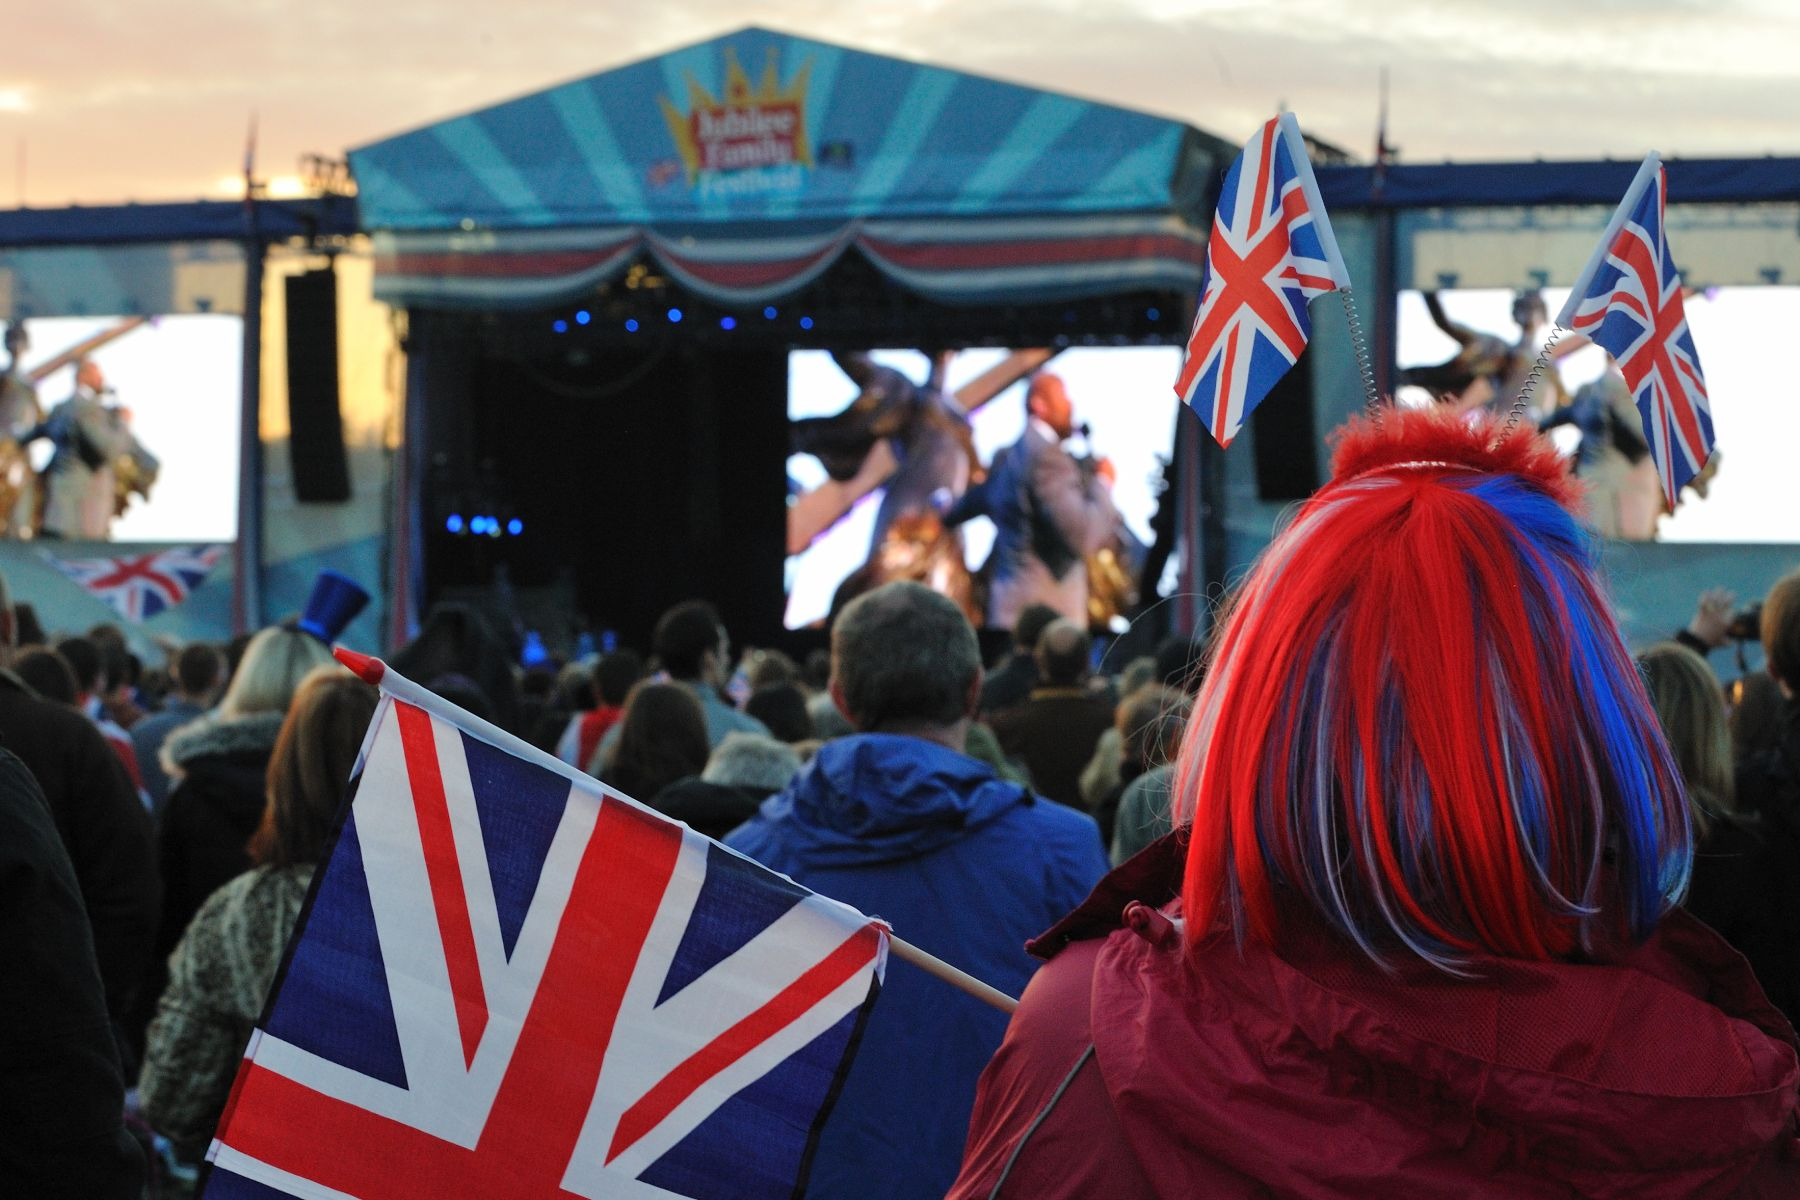 Londoners and visitors gathered at Hyde Park to see on giant screens the Diamond Jubilee Concert at Buckingham Palace.